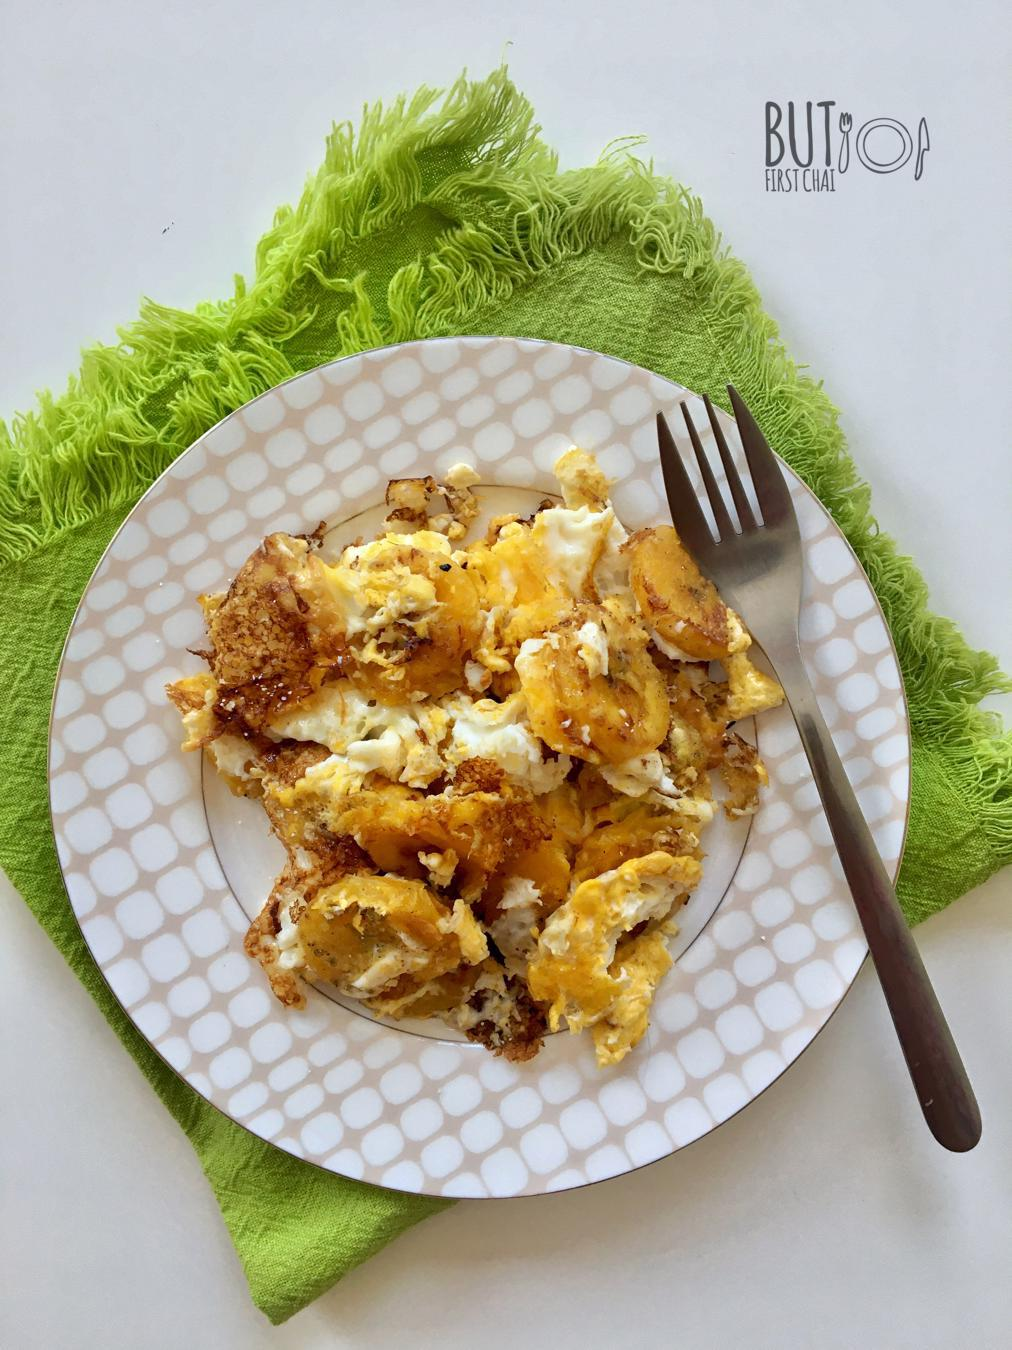 Kai Vatiyathu | Pan Roasted Ripe Plantains with Eggs